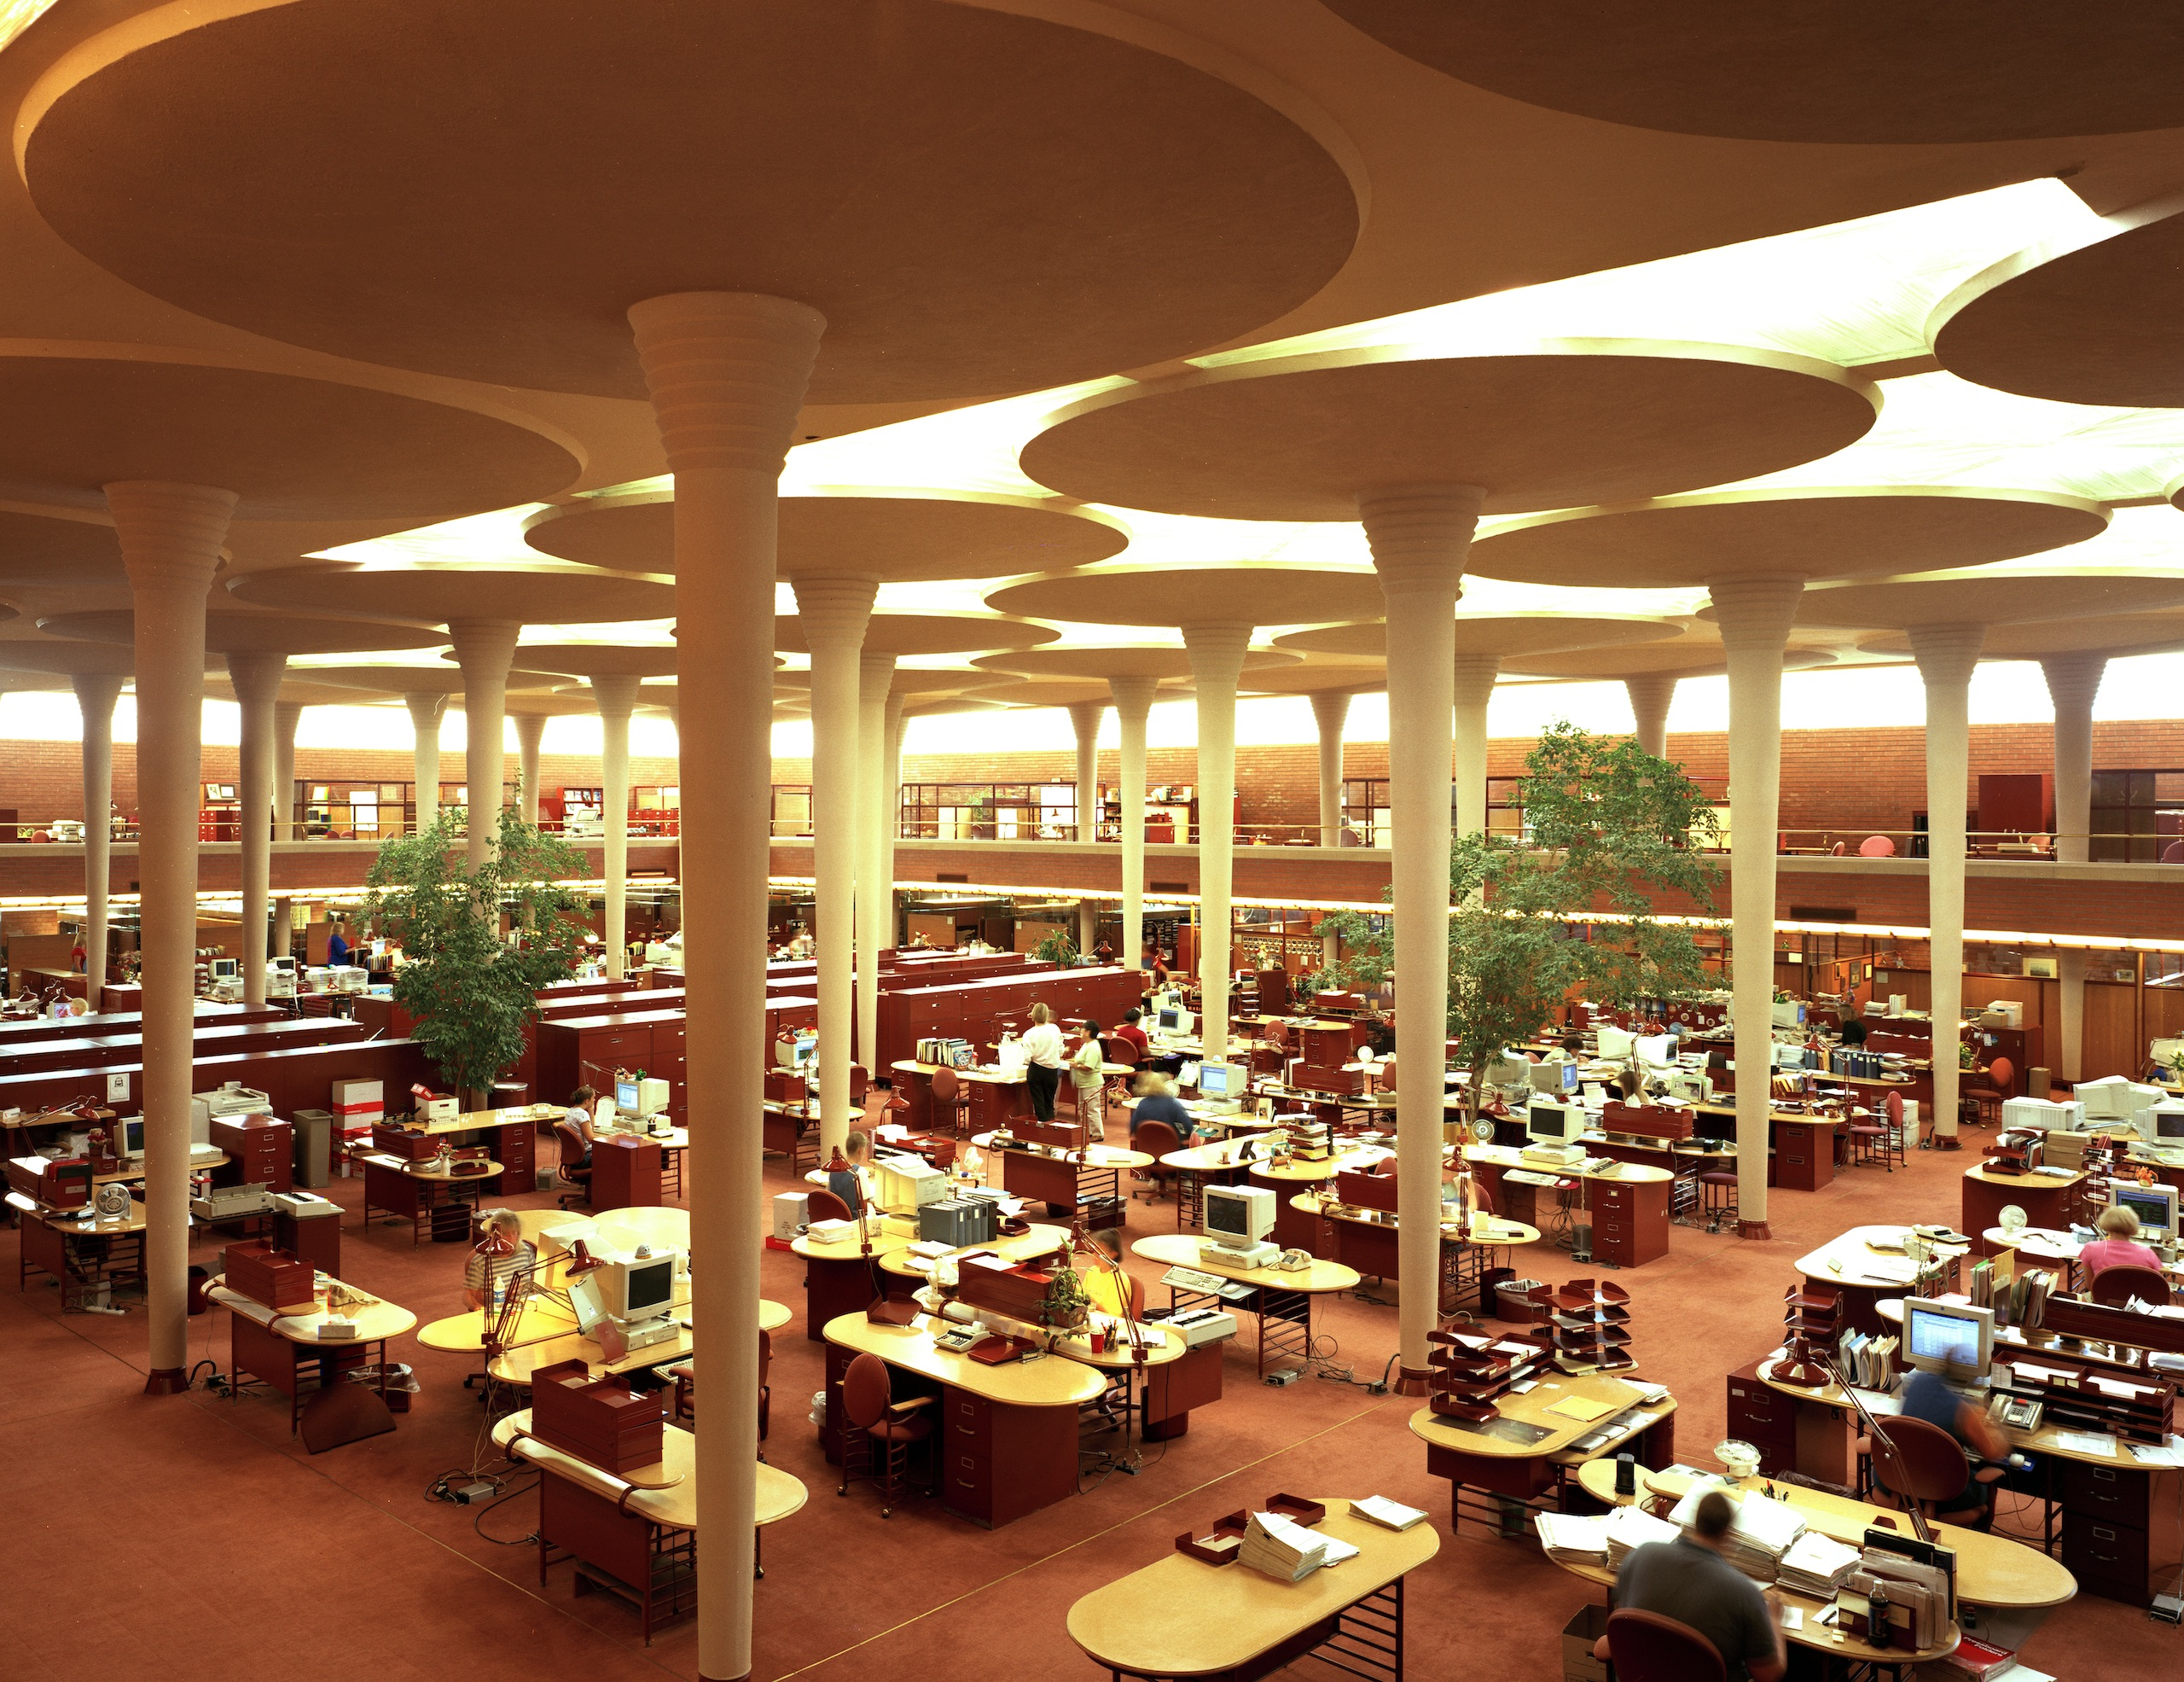 Architecture - Great Workroom of the Johnson Wax Headquarters, Racine, WI